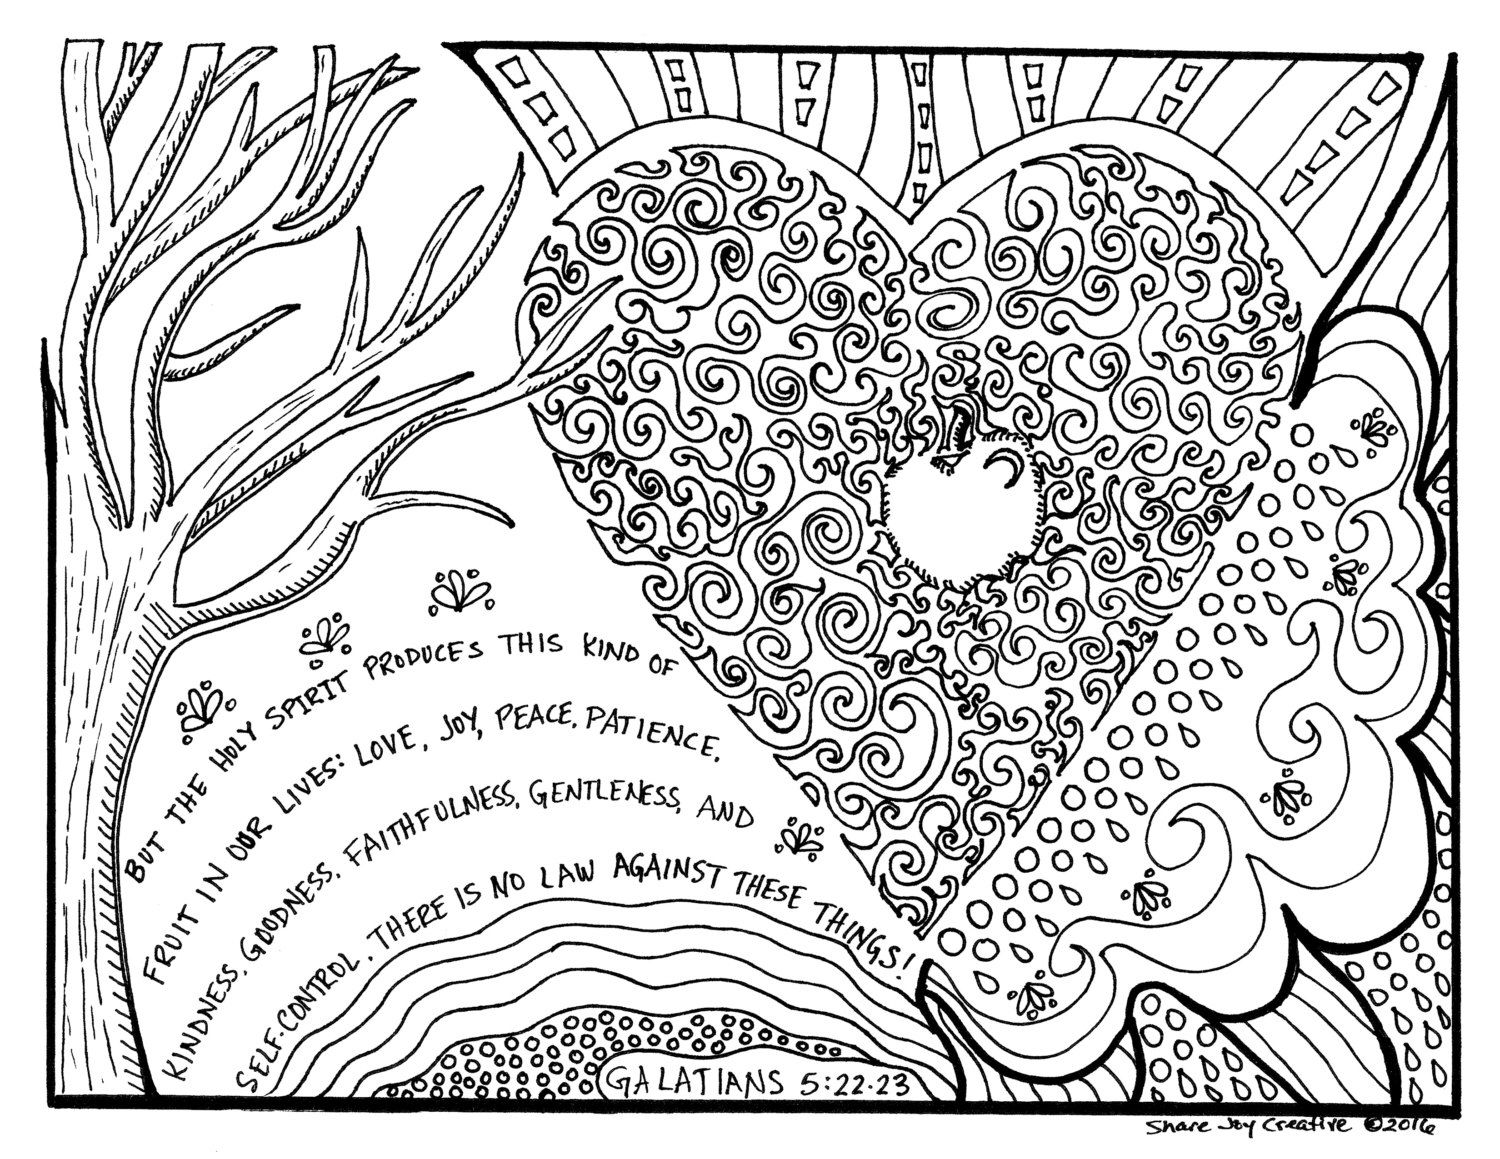 The Fruit Of The Holy Spirit Coloring Page Printable Etsy Coloring Pages Printable Flower Coloring Pages Coloring Pictures